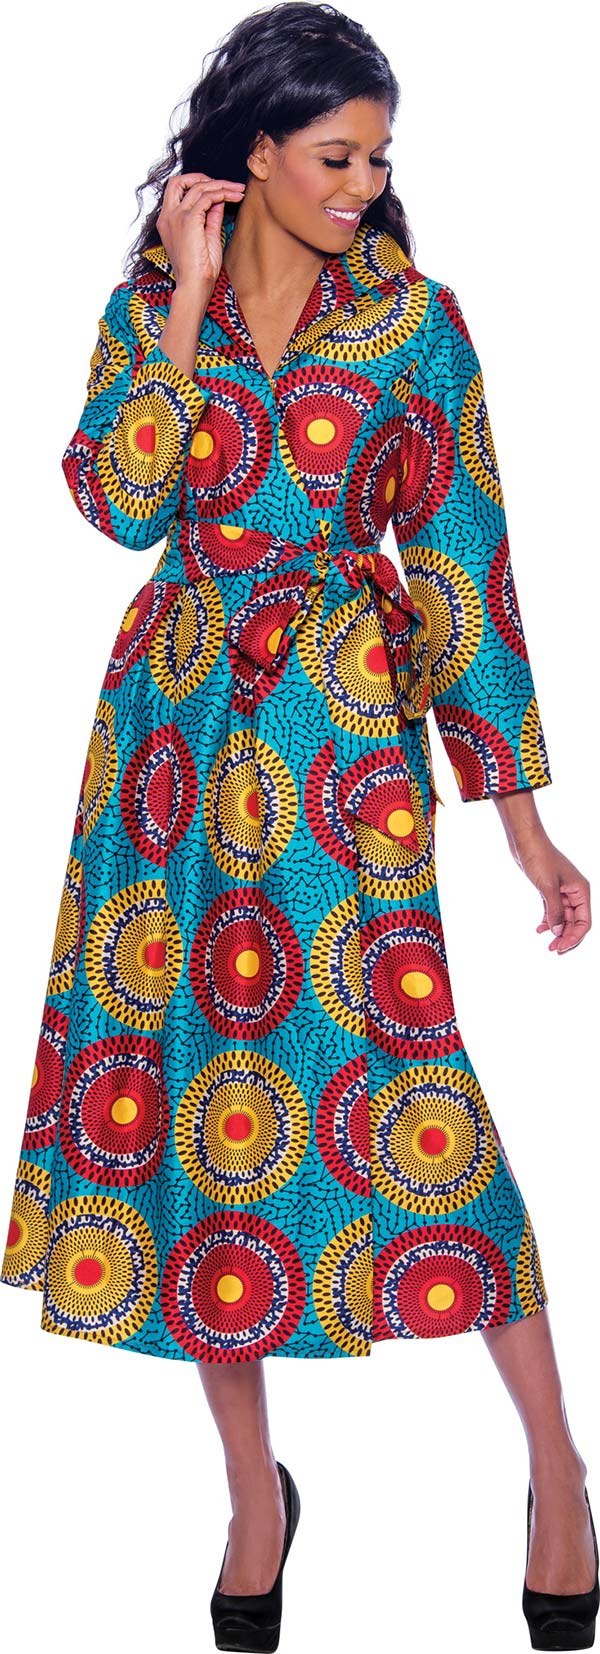 Nubiano Dresses DN2431 - Multi Color Sphere Print Wrap Style Dress With Sash